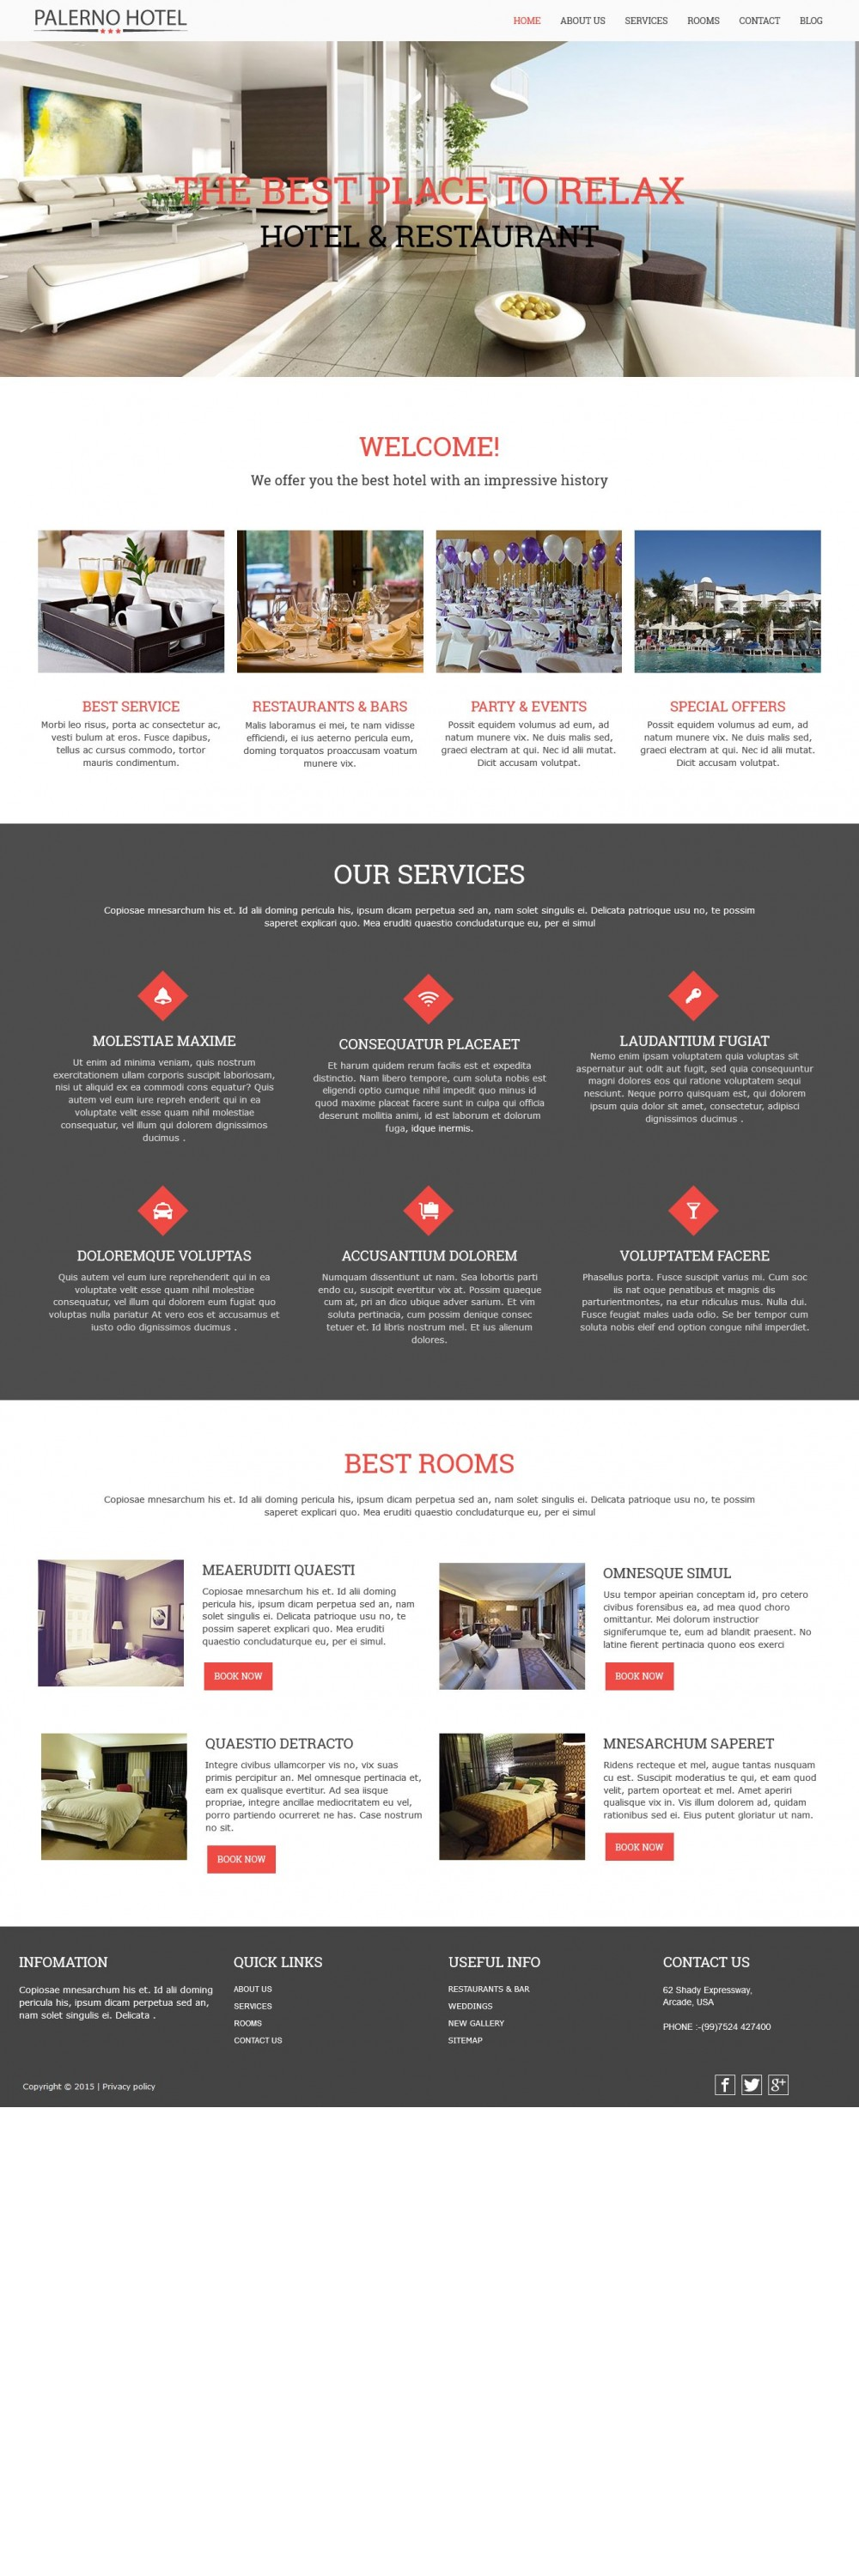 Hotel palerno joomla template for hotel business for Joomla hotel template